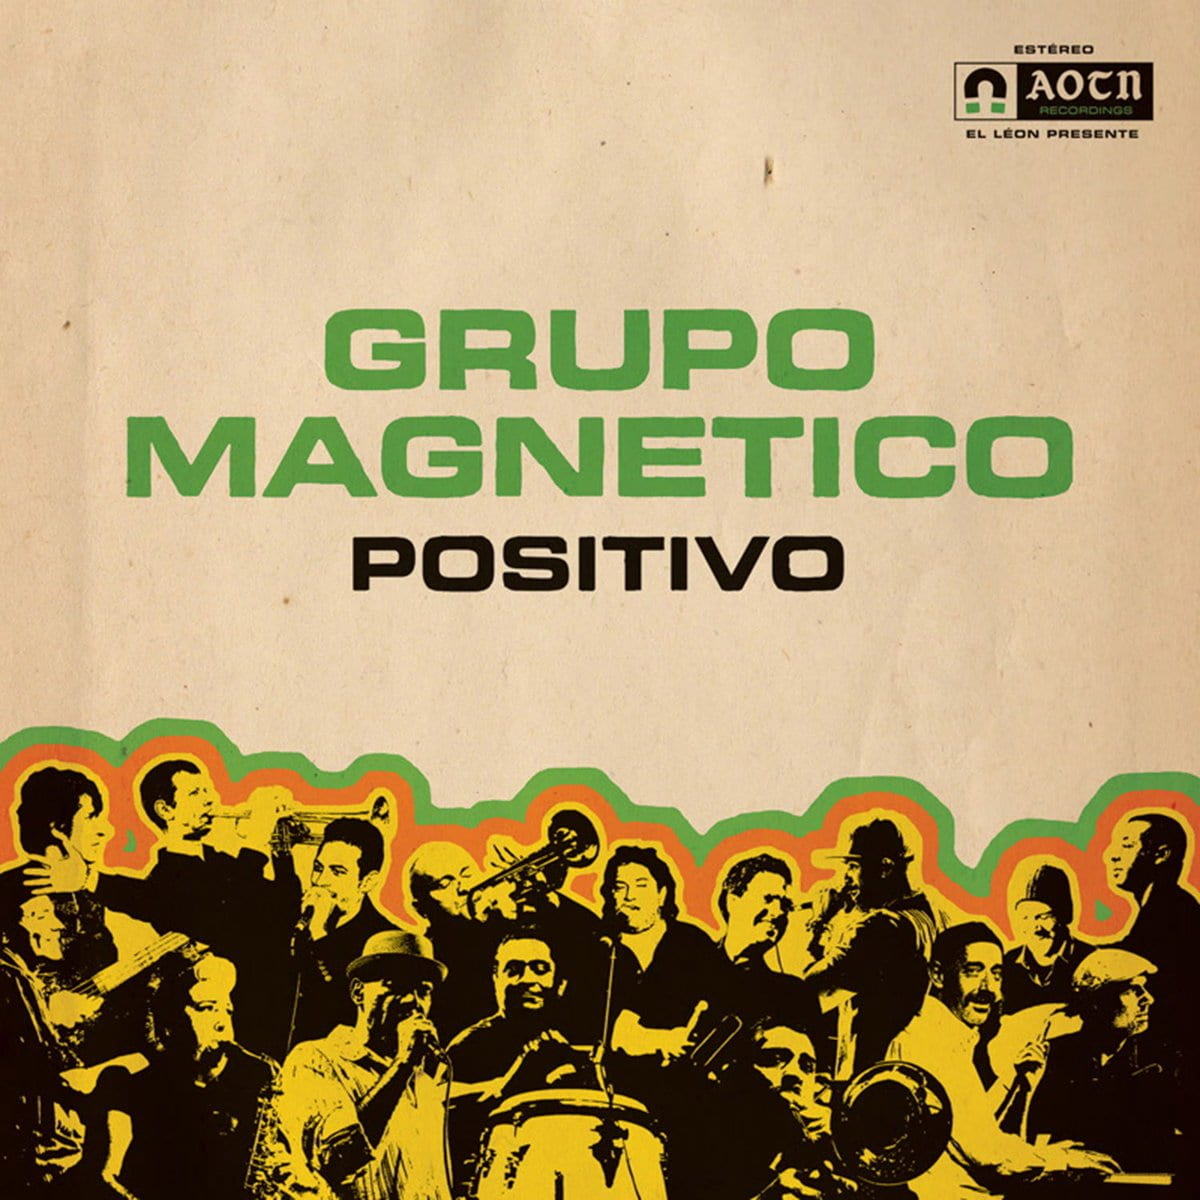 Grupo Magnetico - Positivo [LP] (Vinyl) - Urban Vinyl | Records, Headphones, and more.